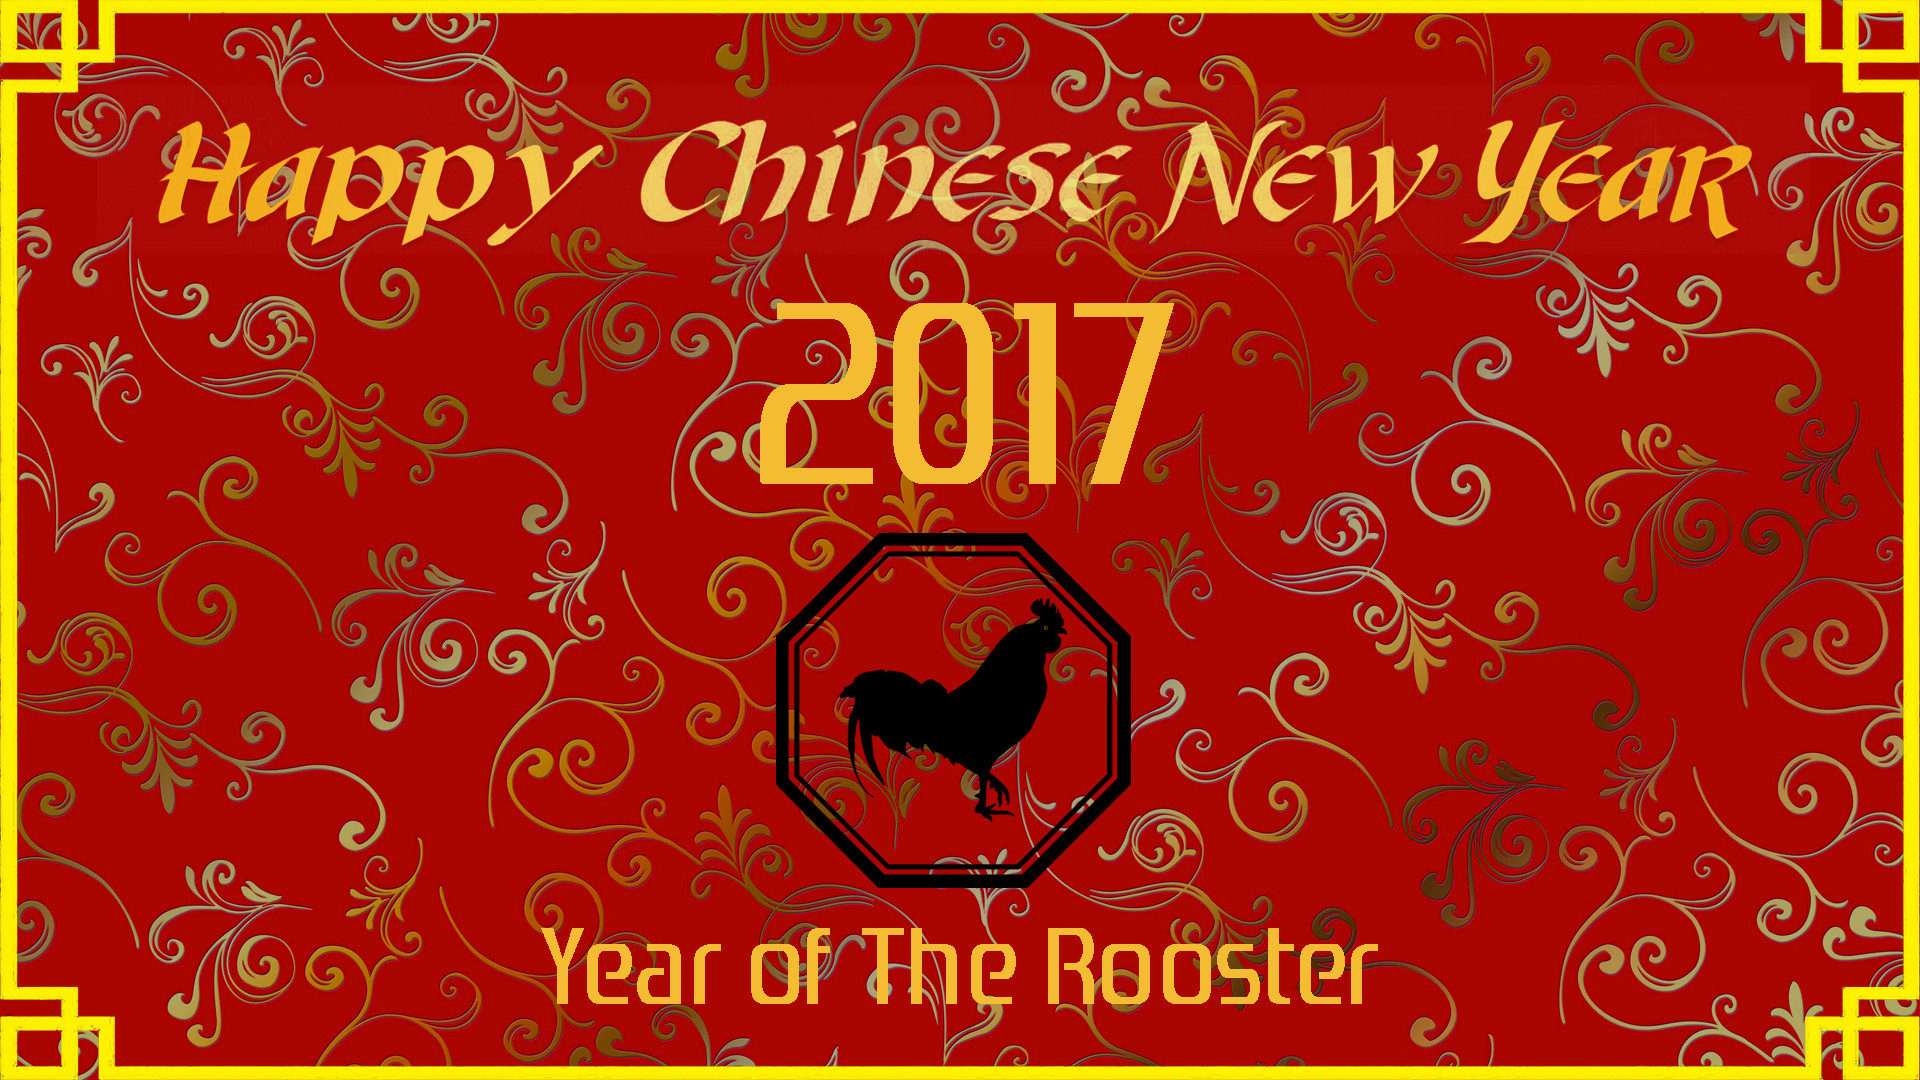 Chinese New Year 2017 Wallpaper – Year of The Rooster